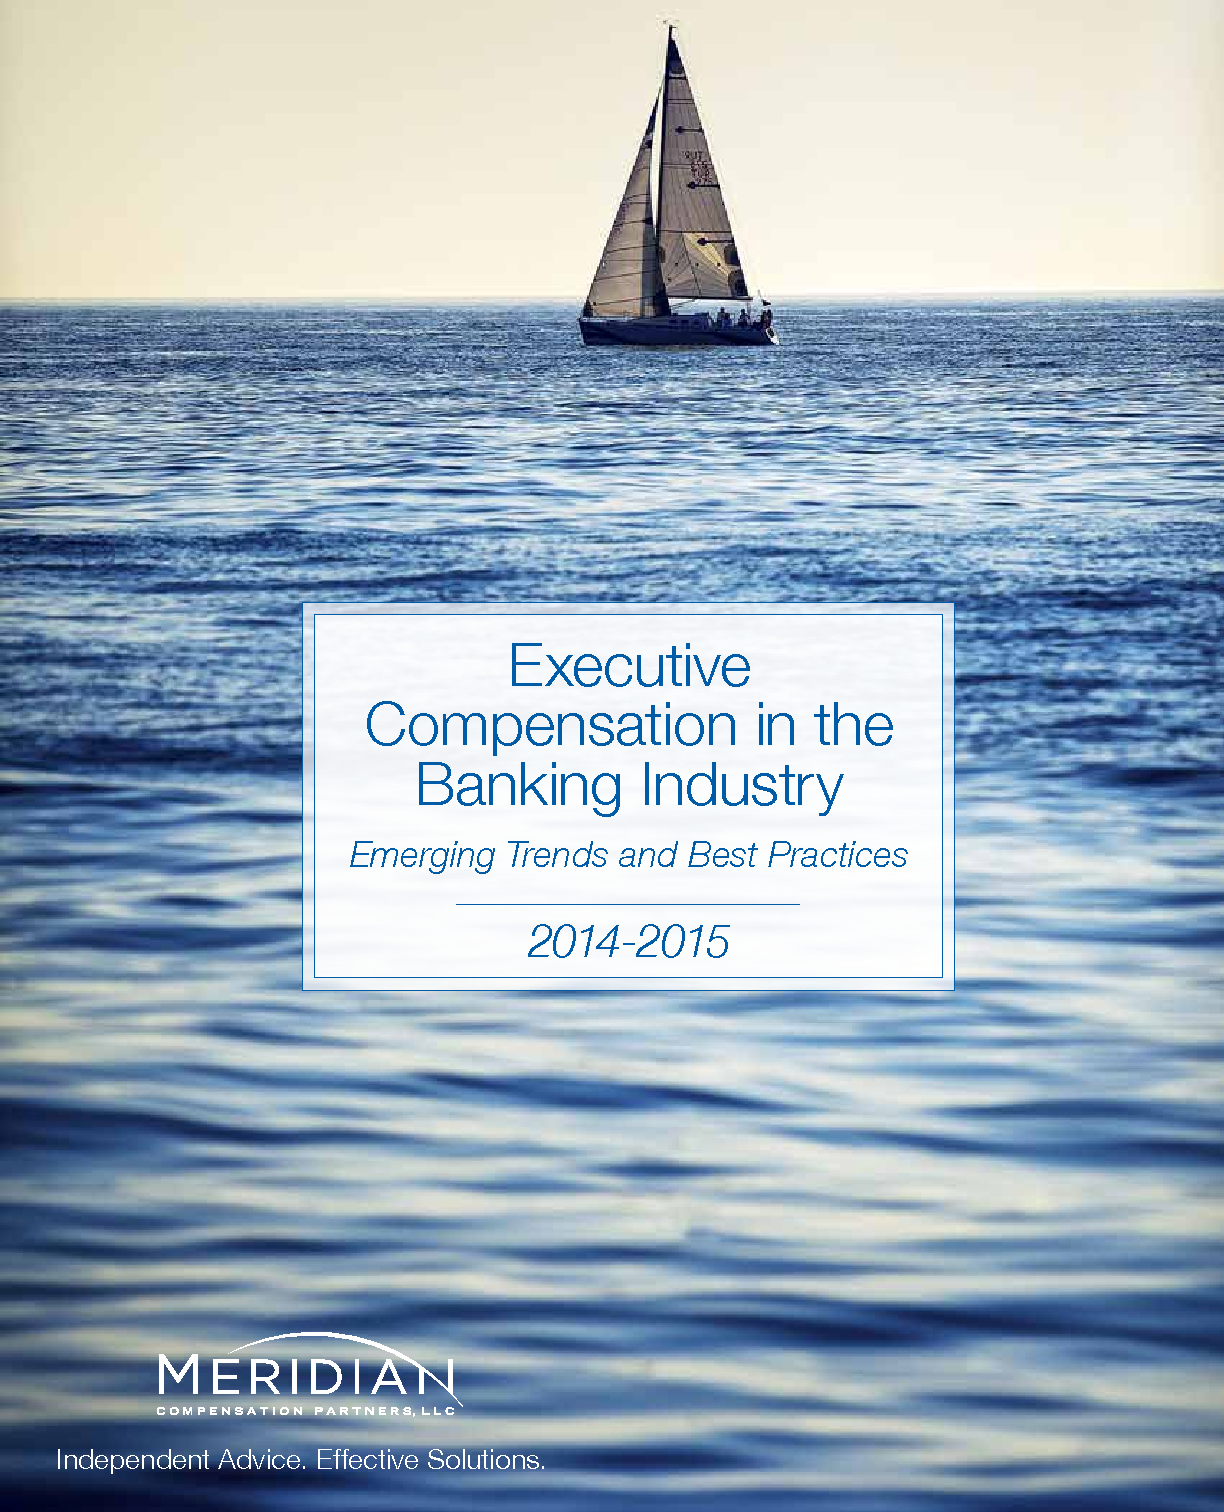 Executive Compensation in the Banking Industry (PDF)